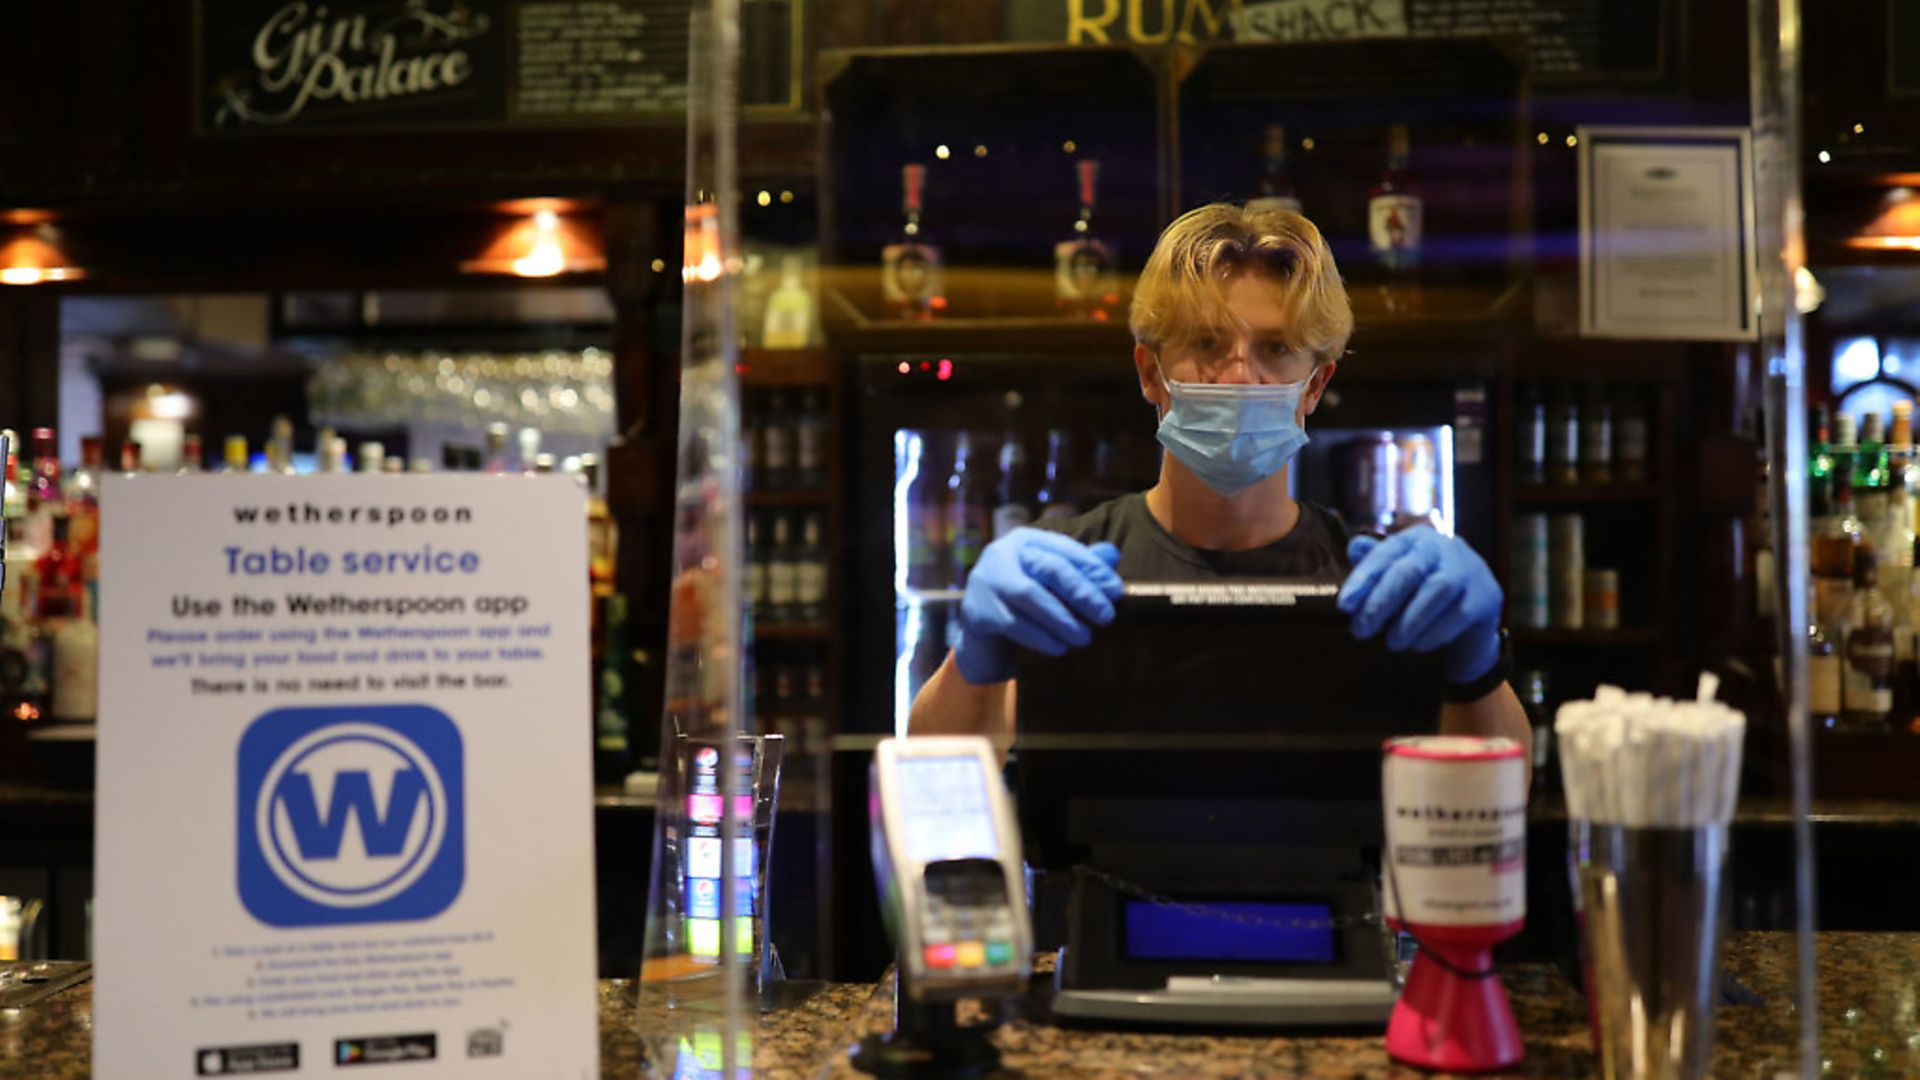 A member of staff in PPE waits to serve drinkers at the reopening of a Wetherspoons pub. Photograph: Aaron Chown/PA Wire. - Credit: PA